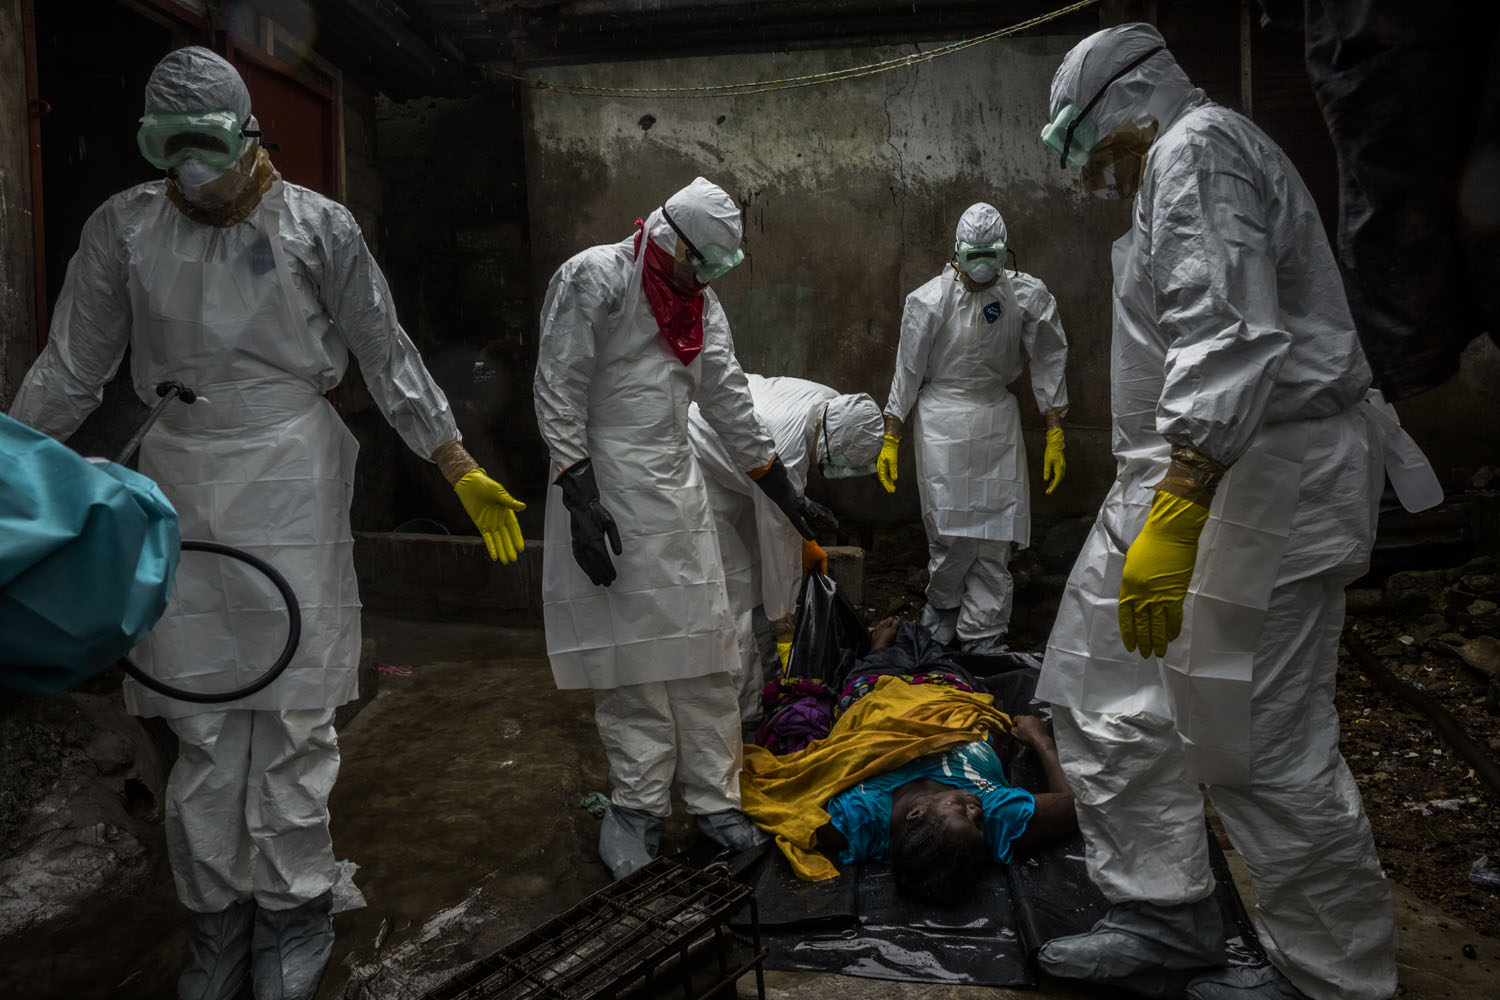 Members of a Liberian Red Cross burial team, under contract from the Liberian Ministry of Health, remove the body of a suspected Ebola victim Lorpu David, 30 on Sept. 18, 2014 in the Gurley street community in central Monrovia, Liberia.